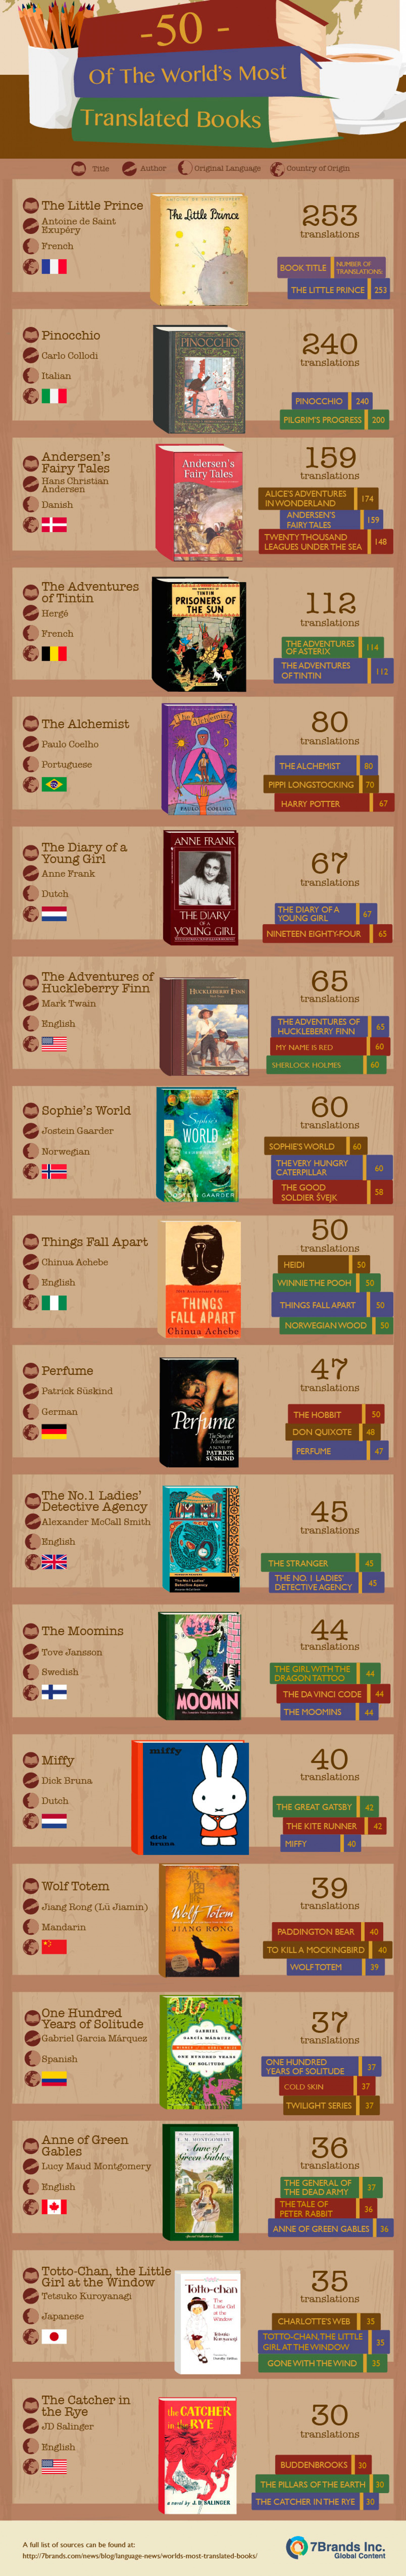 50 of the World's Most Translated Books Infographic